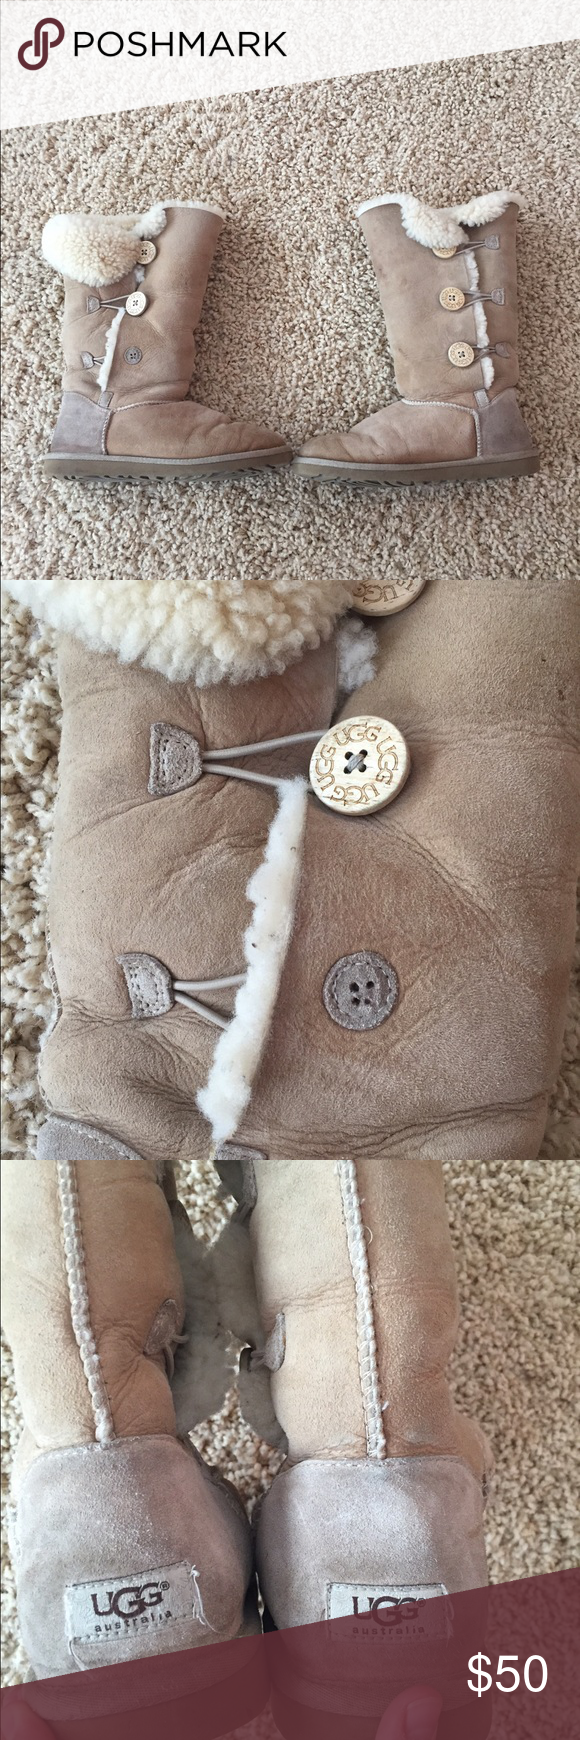 Ugg Bailey button tall Worn. Missing button. UGG Shoes Winter & Rain Boots